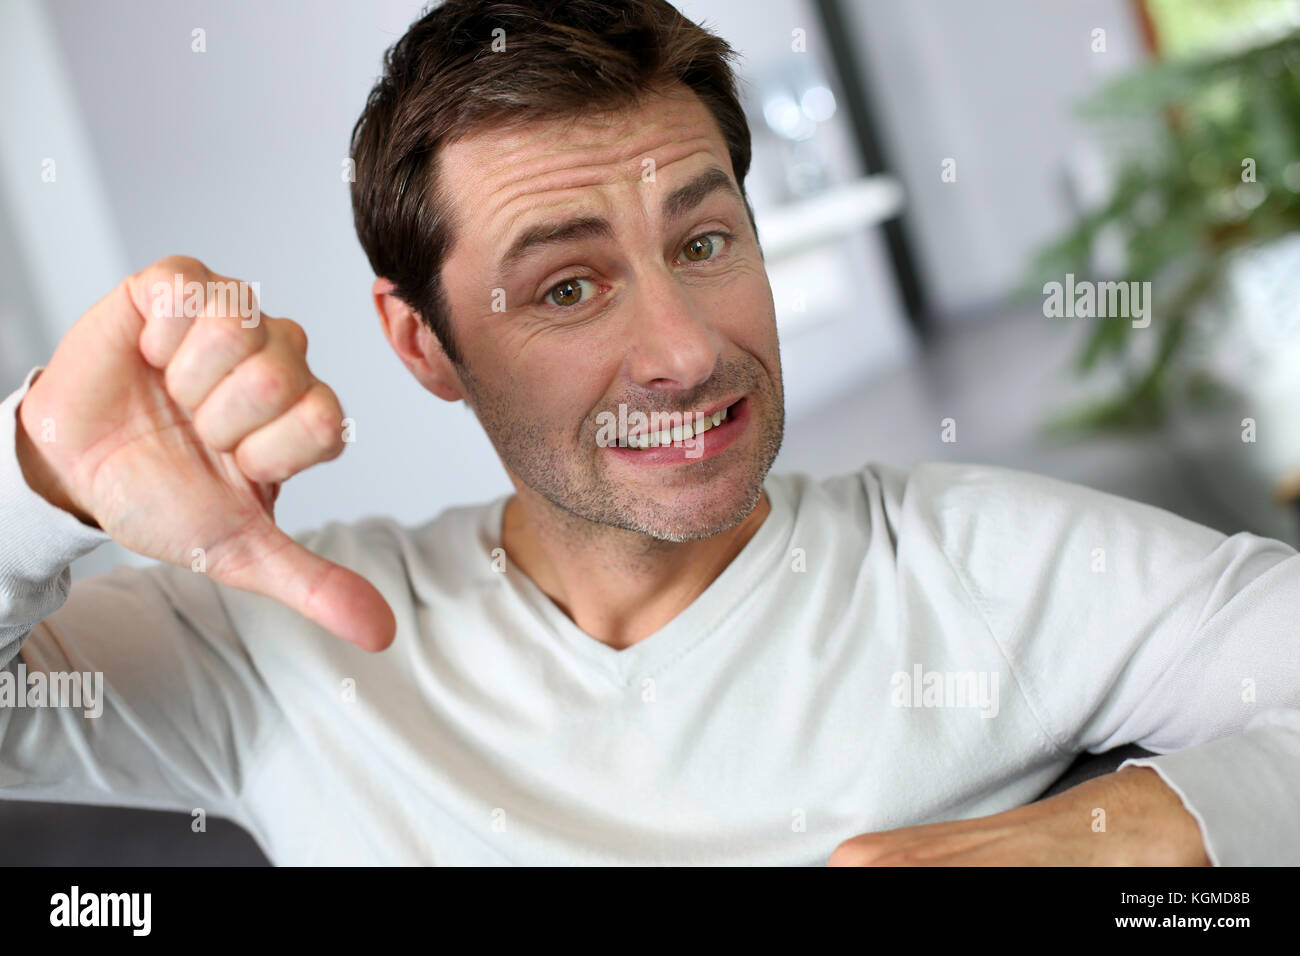 Discontented man showing thumb down - Stock Image